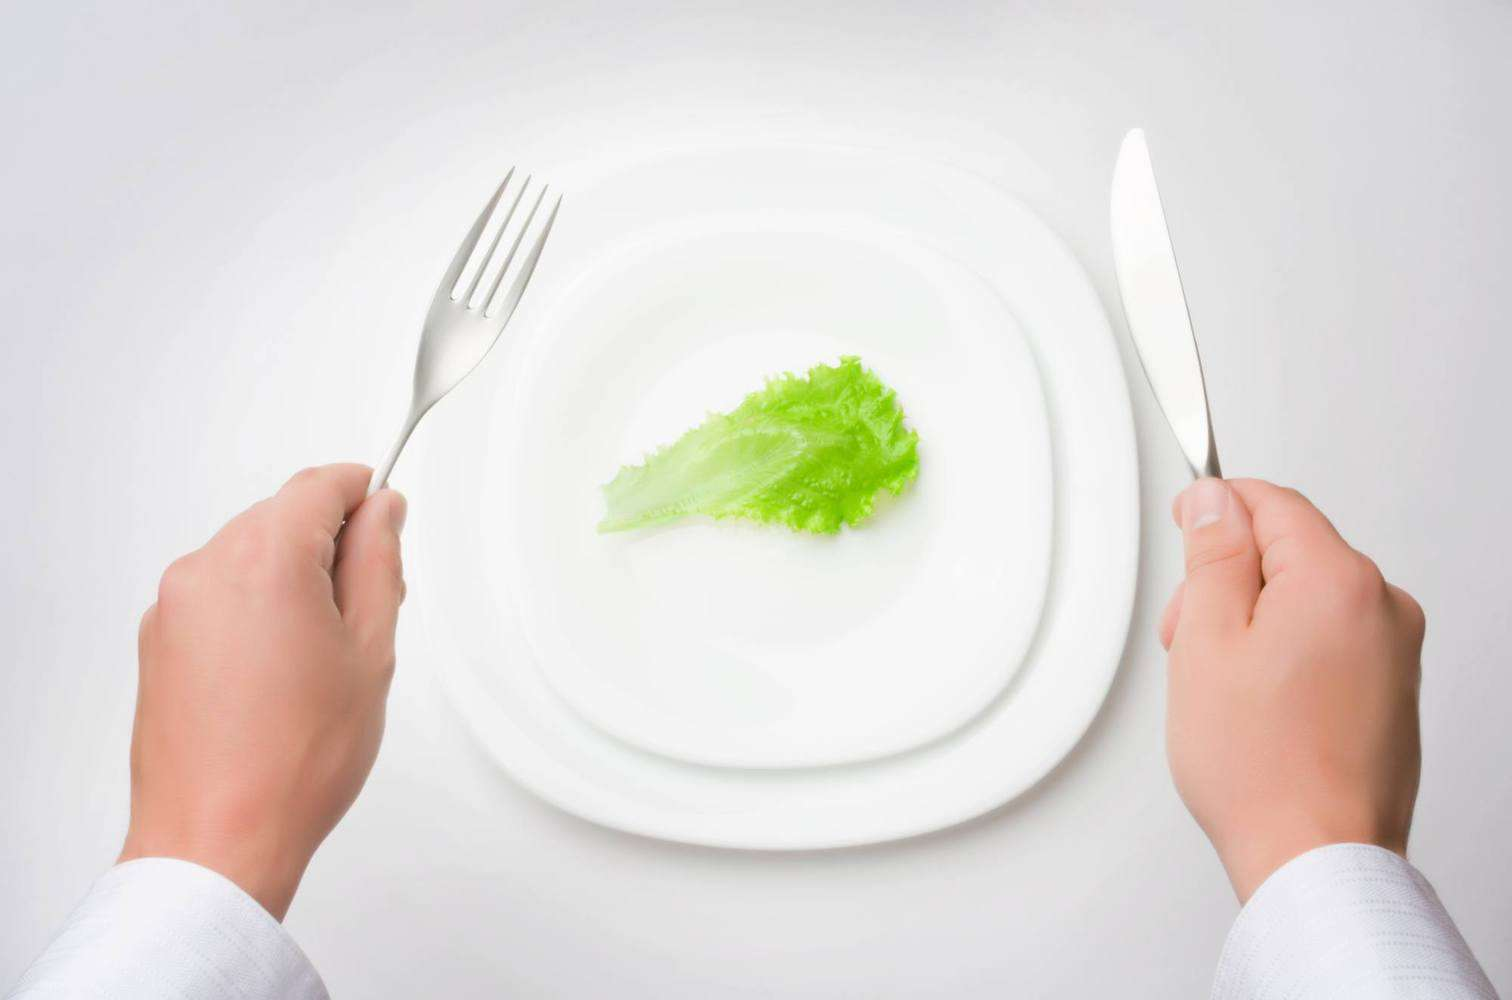 A small salad leaf on a plate.